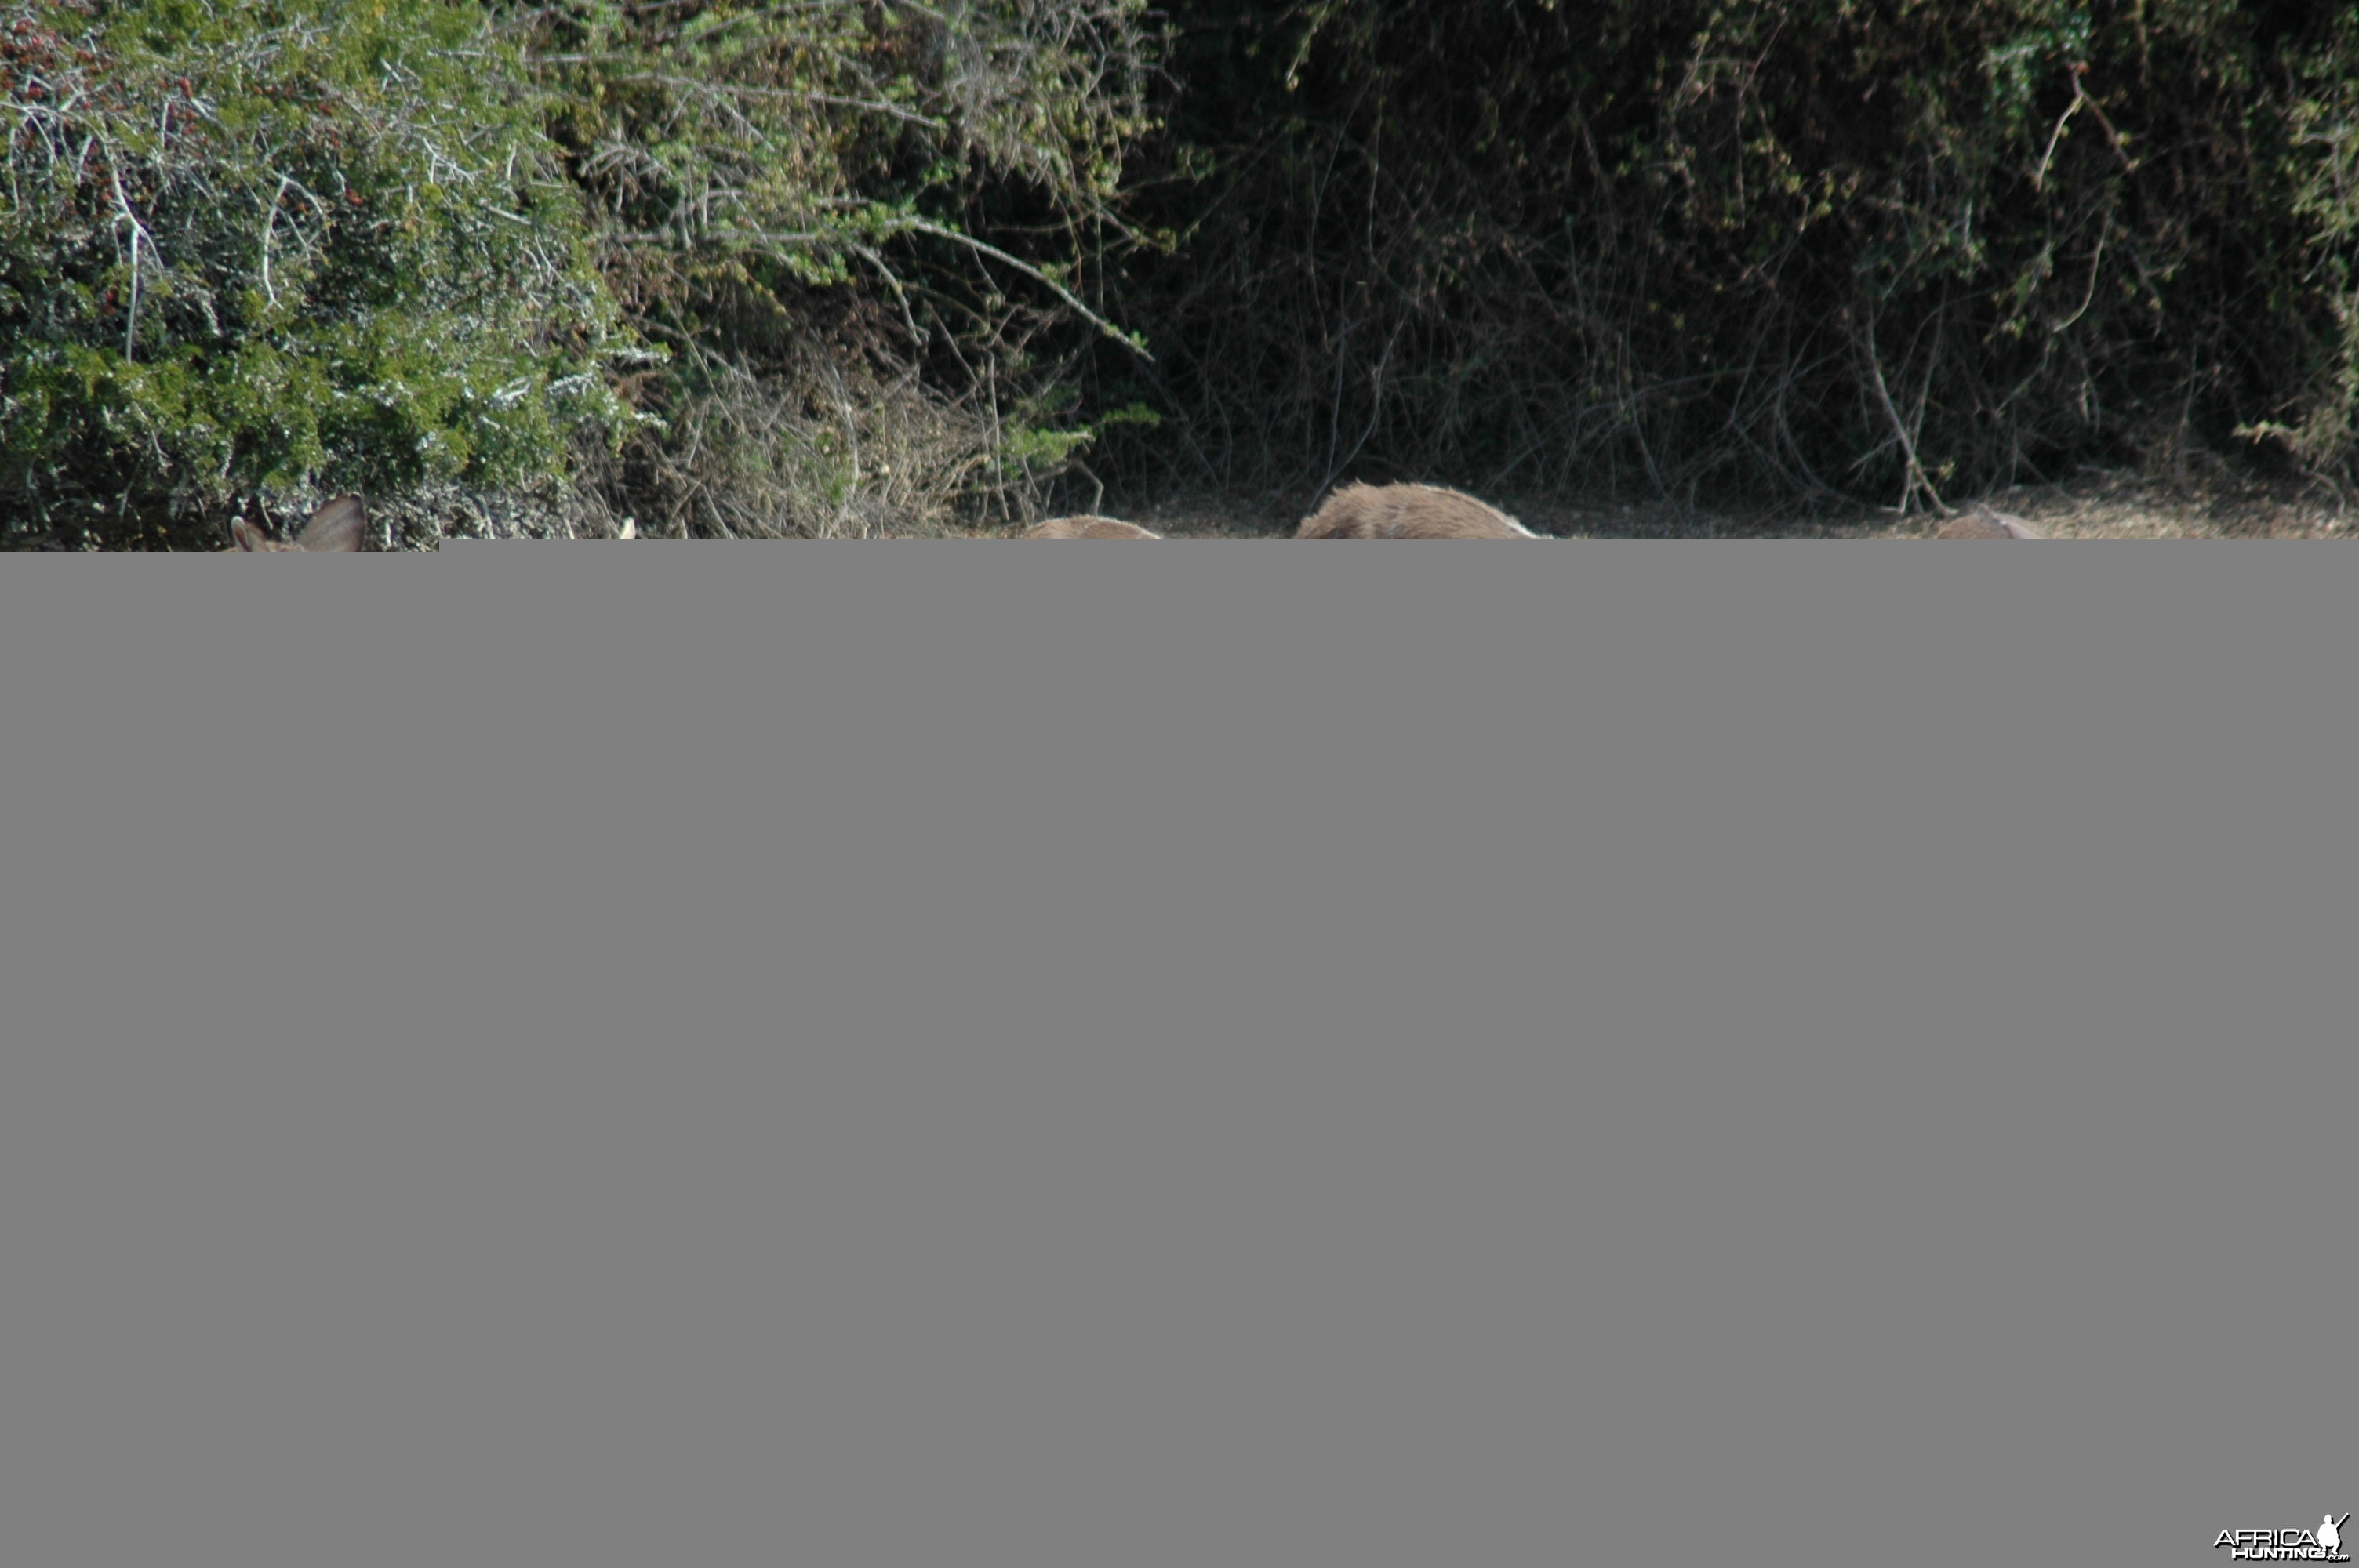 Kudus at pond, Eastern Cape, South Africa